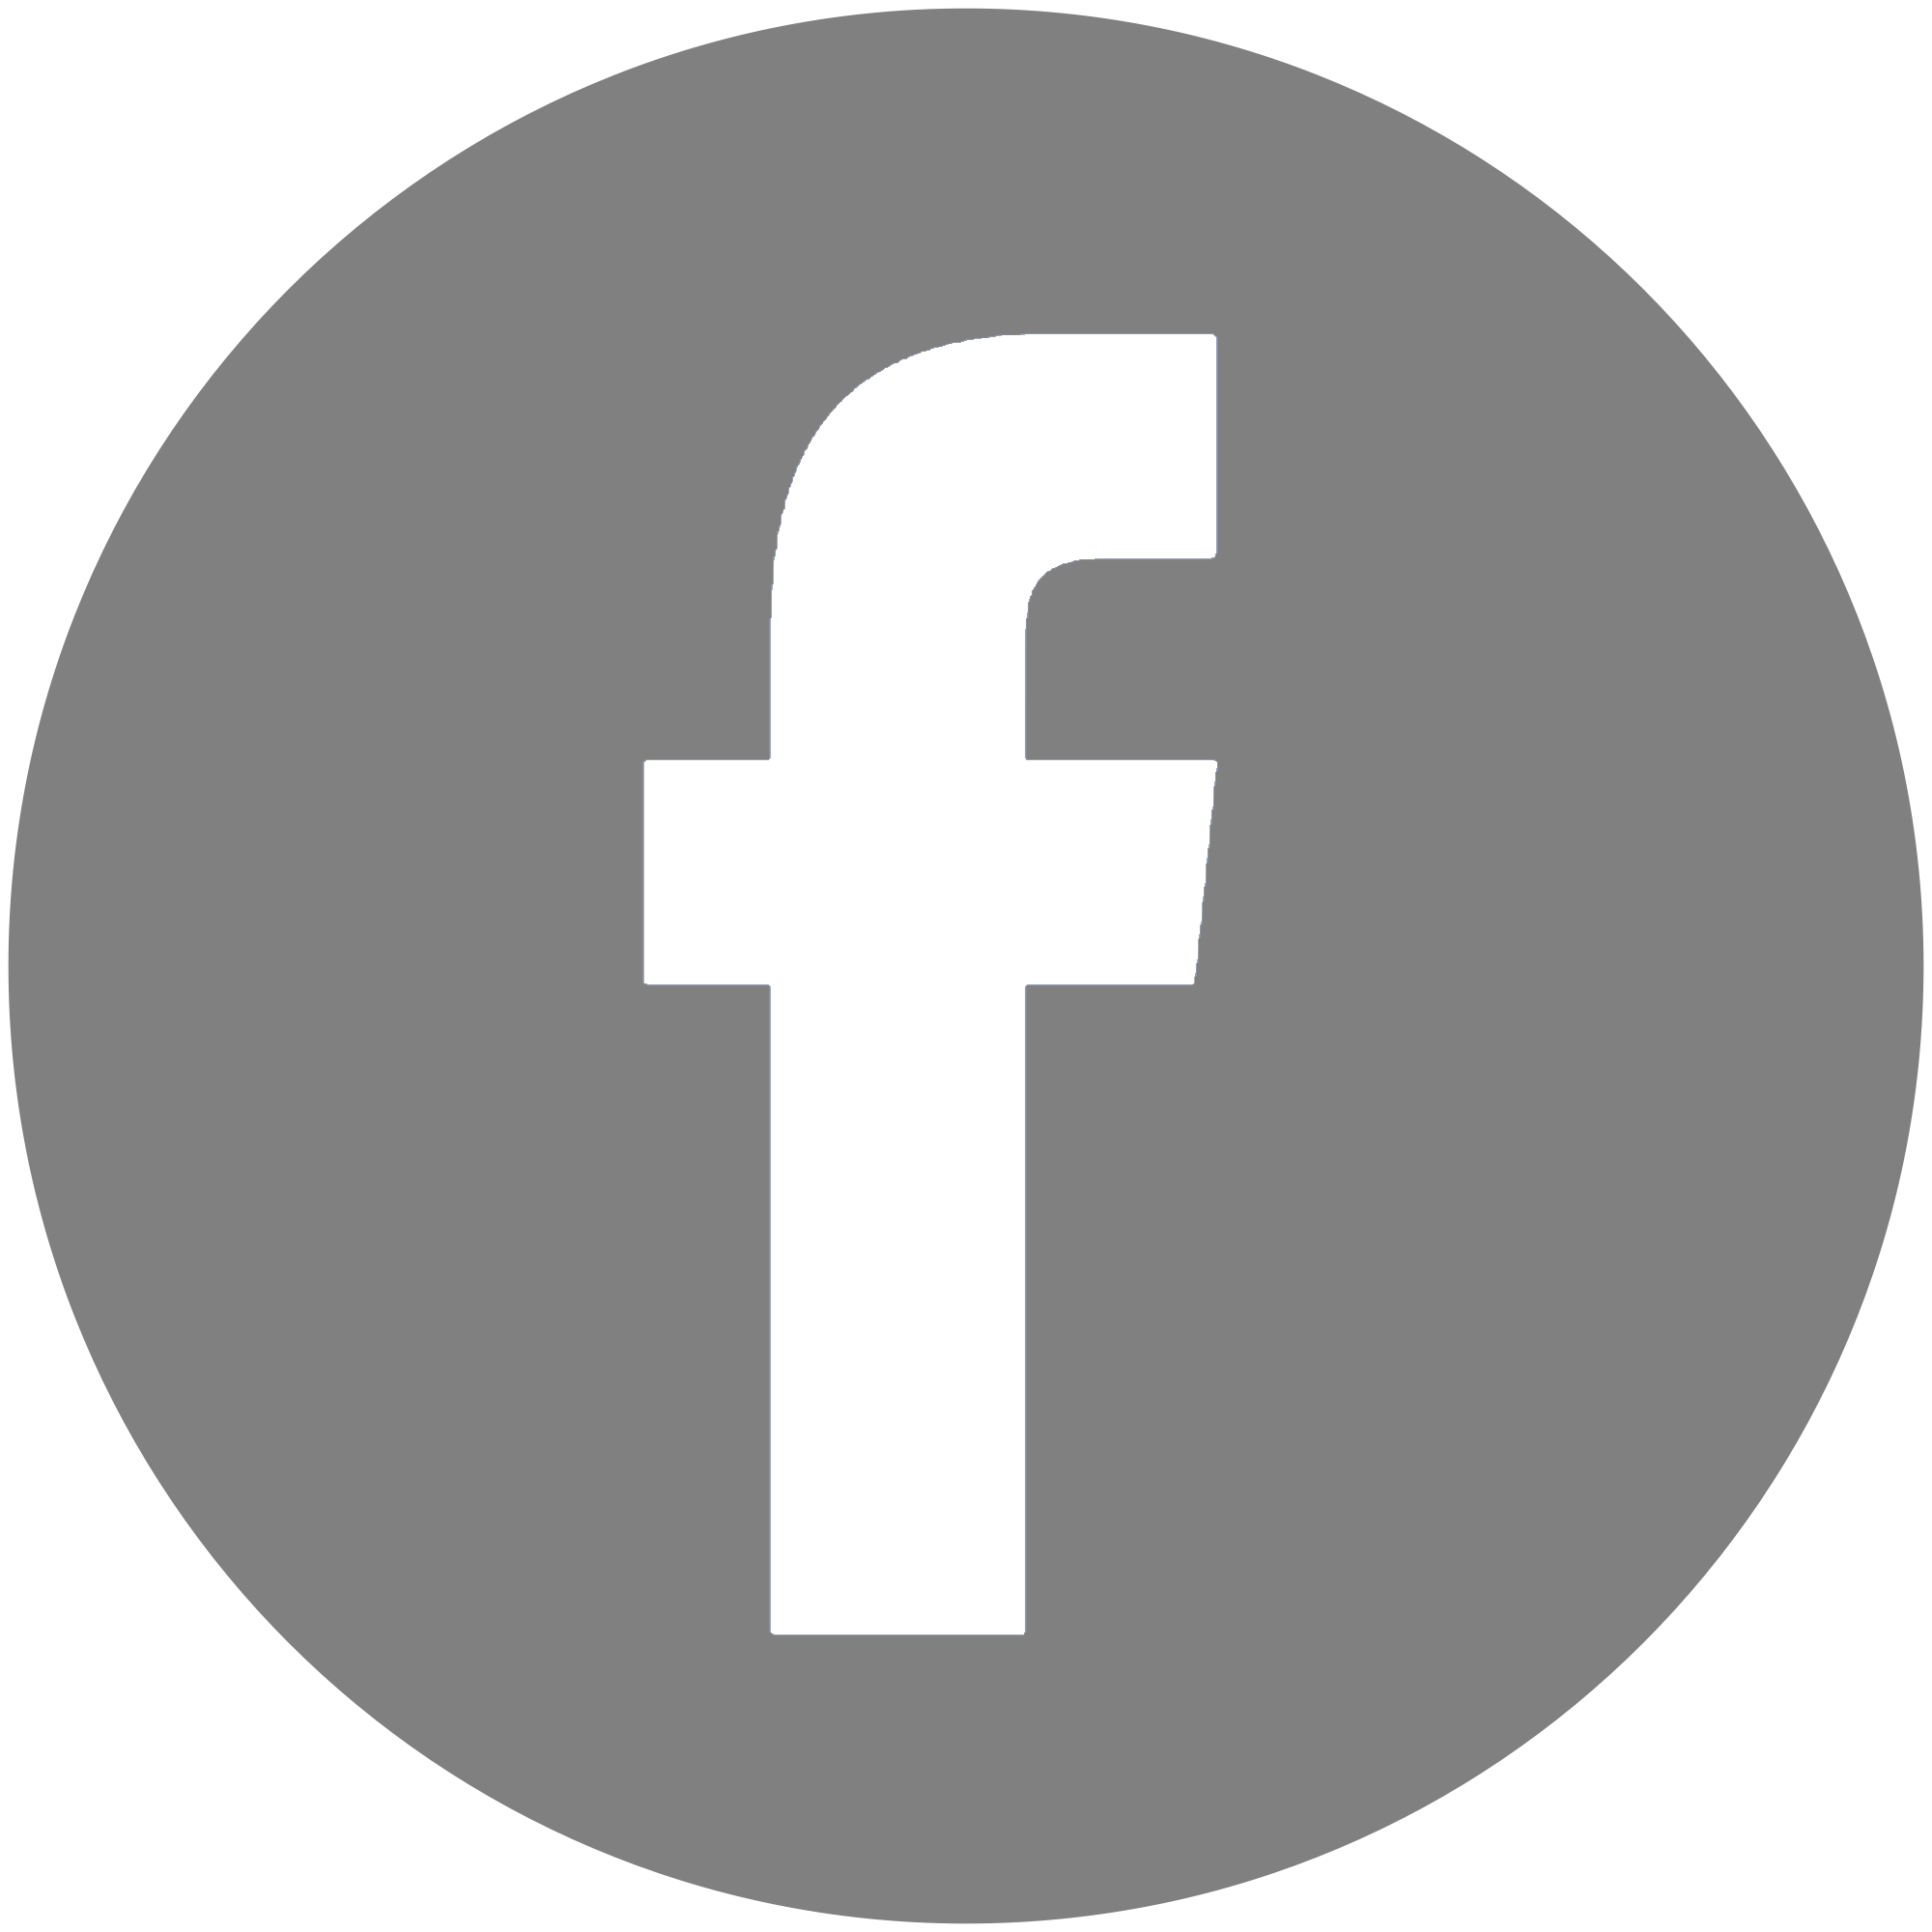 Facebook-icon-wq